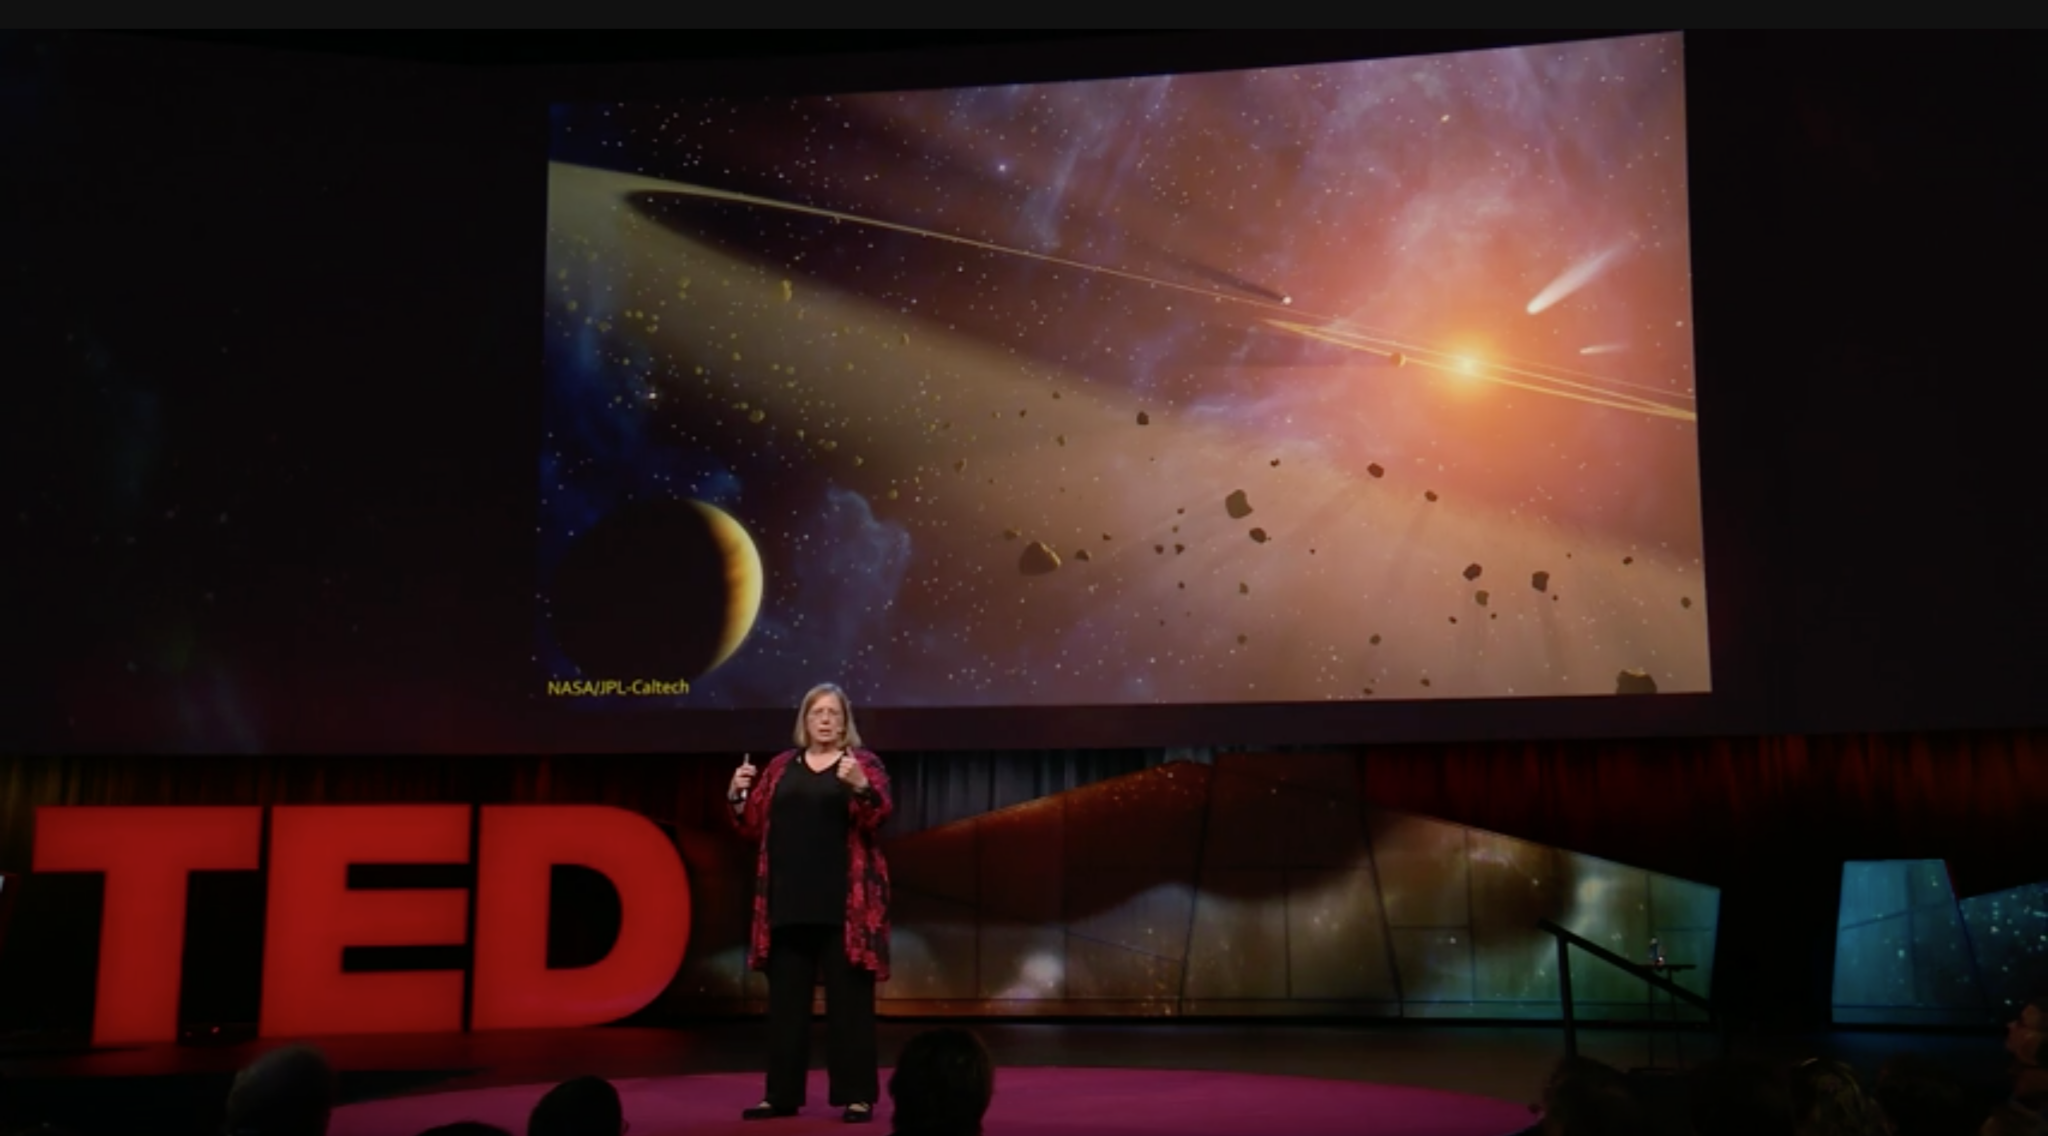 """In October 2017, astrobiologist Karen J. Meech got the call every astronomer waits for: NASA had spotted the very first visitor from another star system. The interstellar comet -- a half-mile-long object eventually named `Oumuamua, from the Hawaiian for """"scout"""" or """"messenger"""" -- raised intriguing questions: Was it a chunk of rocky debris from a new star system, shredded material from a supernova explosion, evidence of alien technology or something else altogether? In this riveting talk, Meech tells the story of how her team raced against the clock to find answers about this unexpected gift from afar. This talk was presented at an official TED conference"""